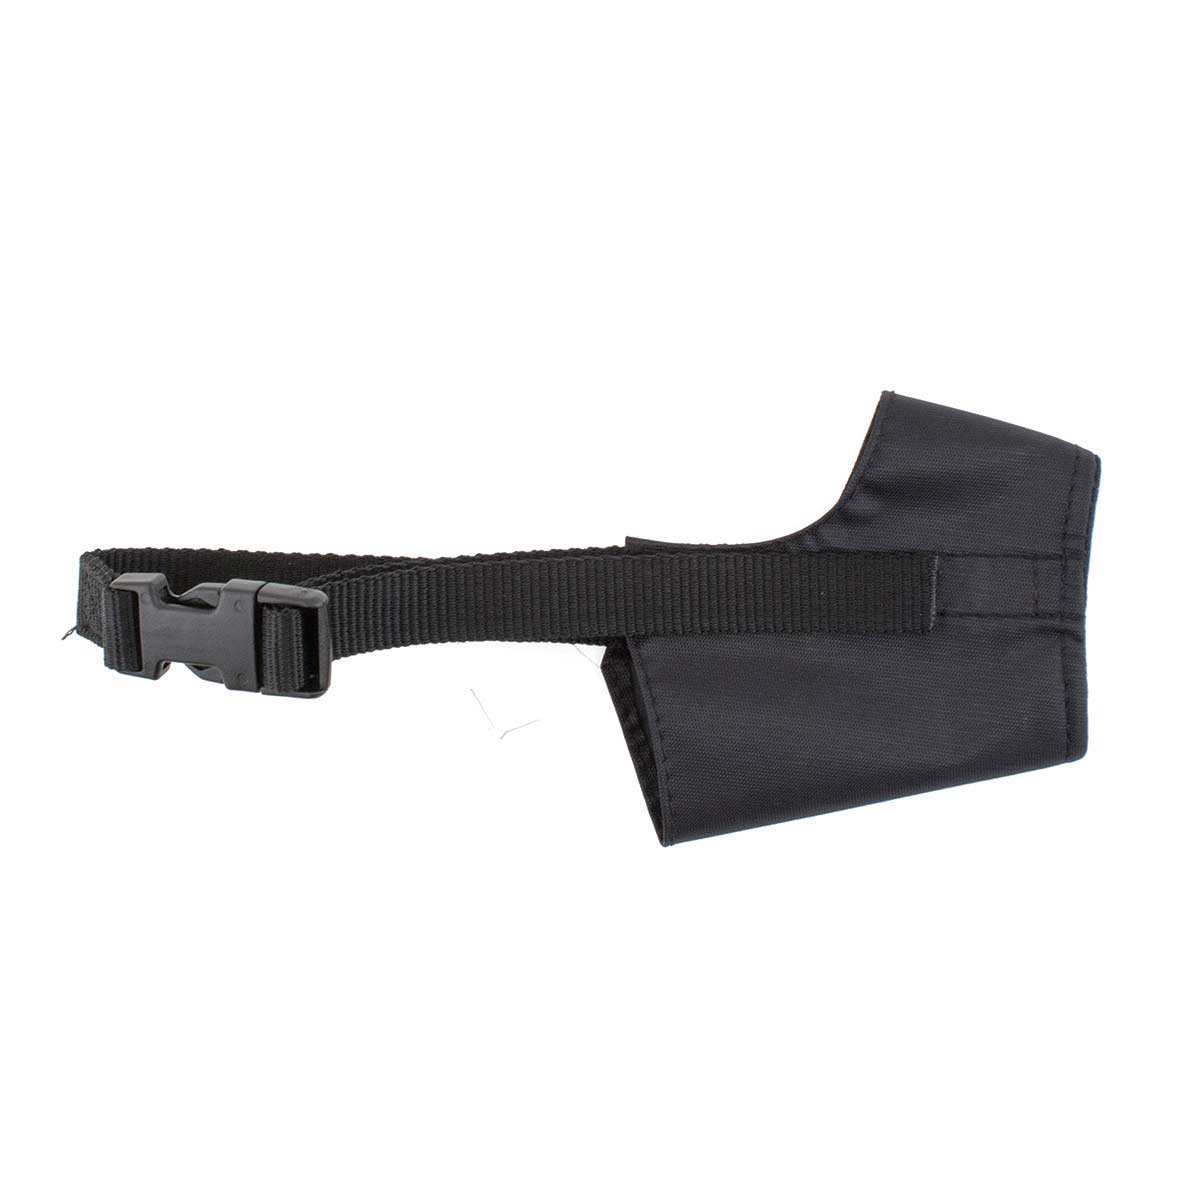 Paw Brothers Premium Nylon Muzzle Size 2 Small 5.5 inches - 5.75 inches